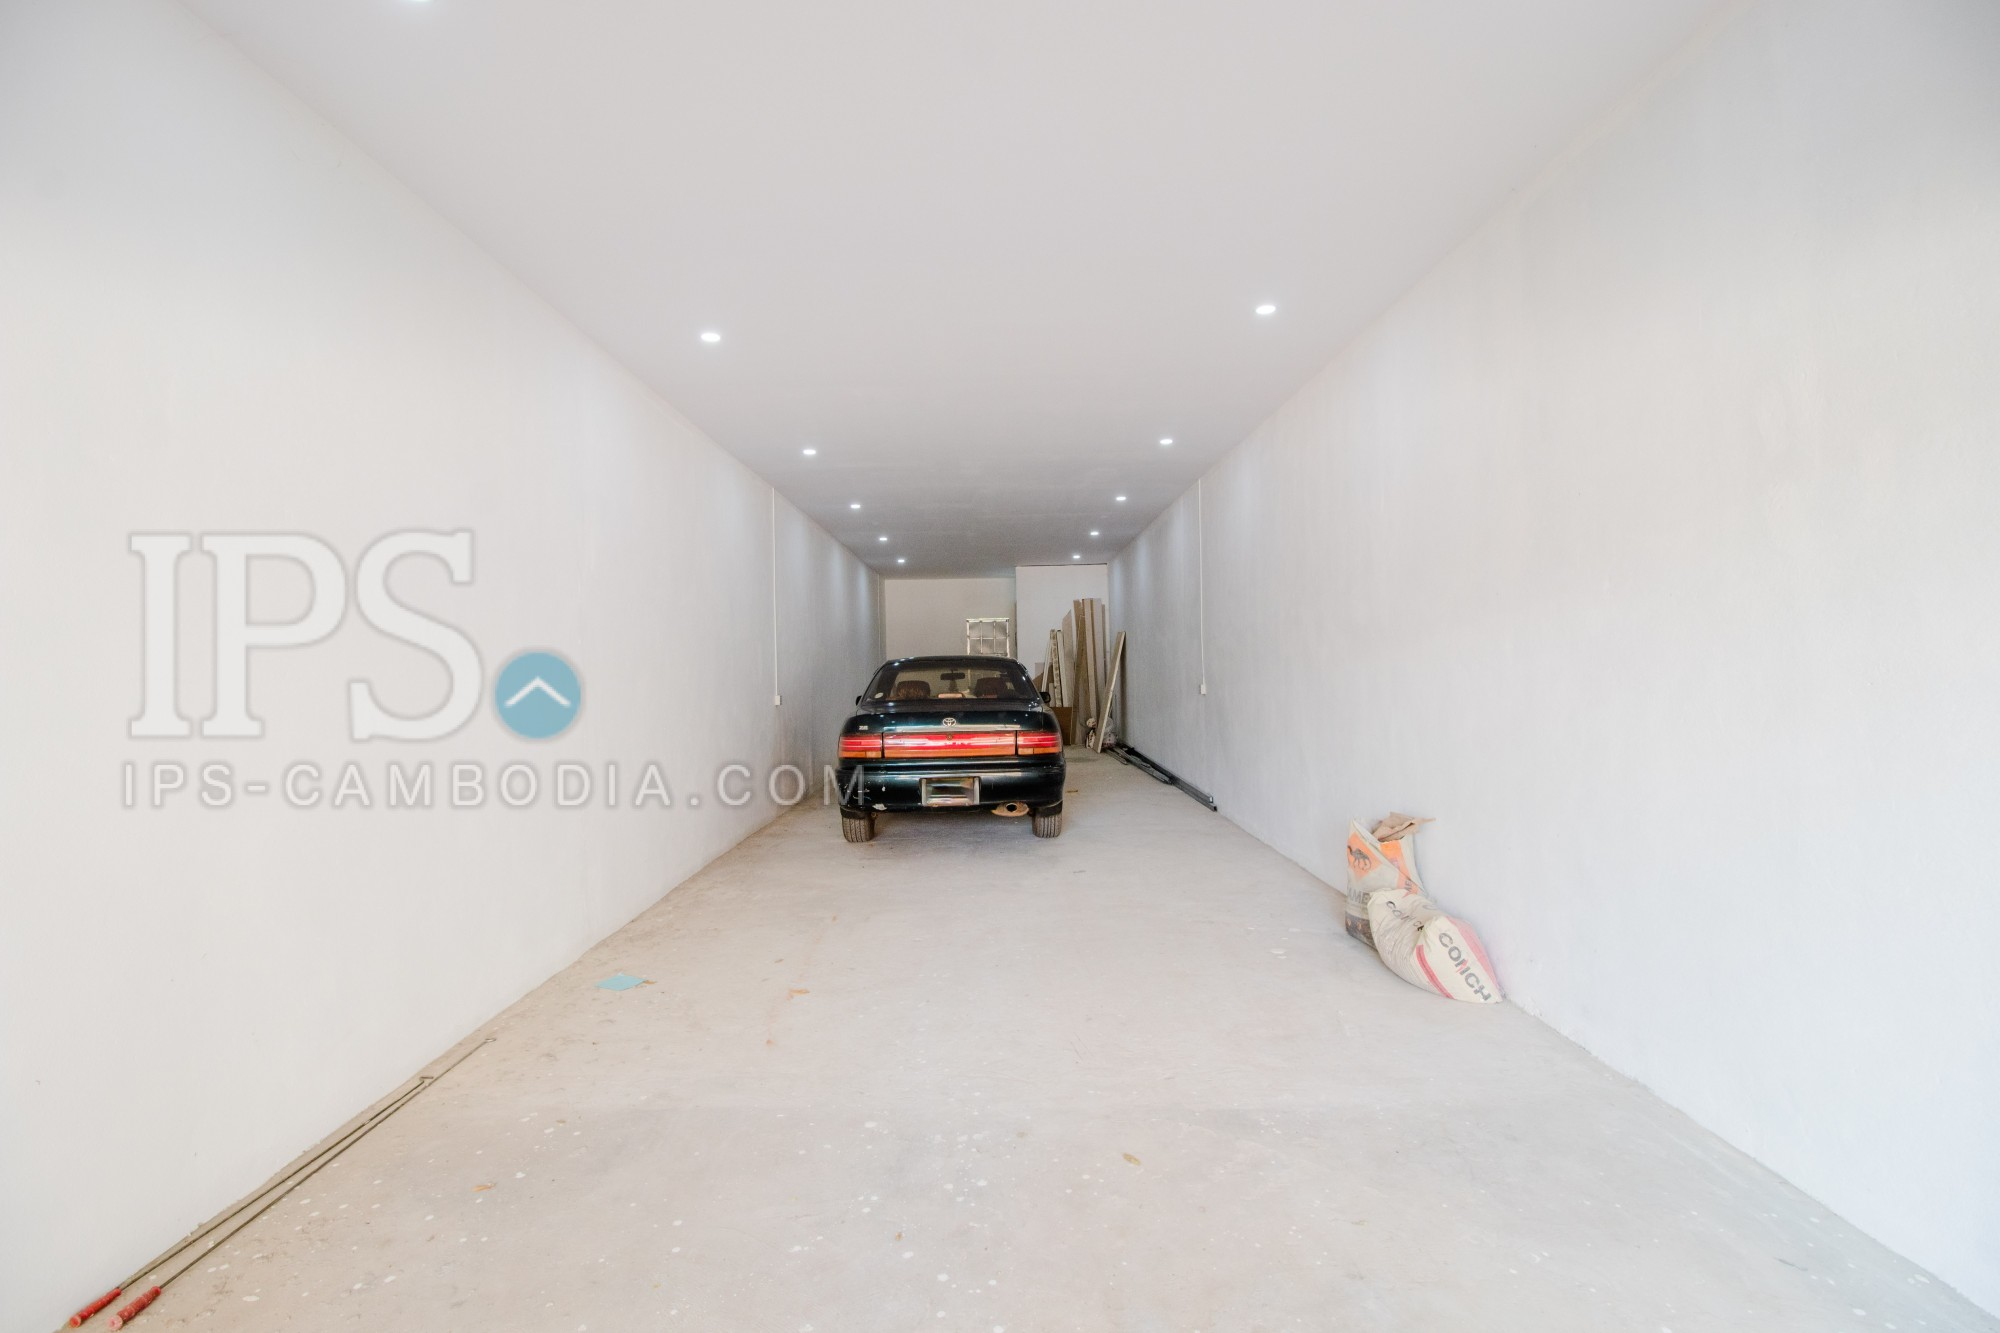 68 Sqm Commercial Space For Rent - Night Market Area, Siem Reap